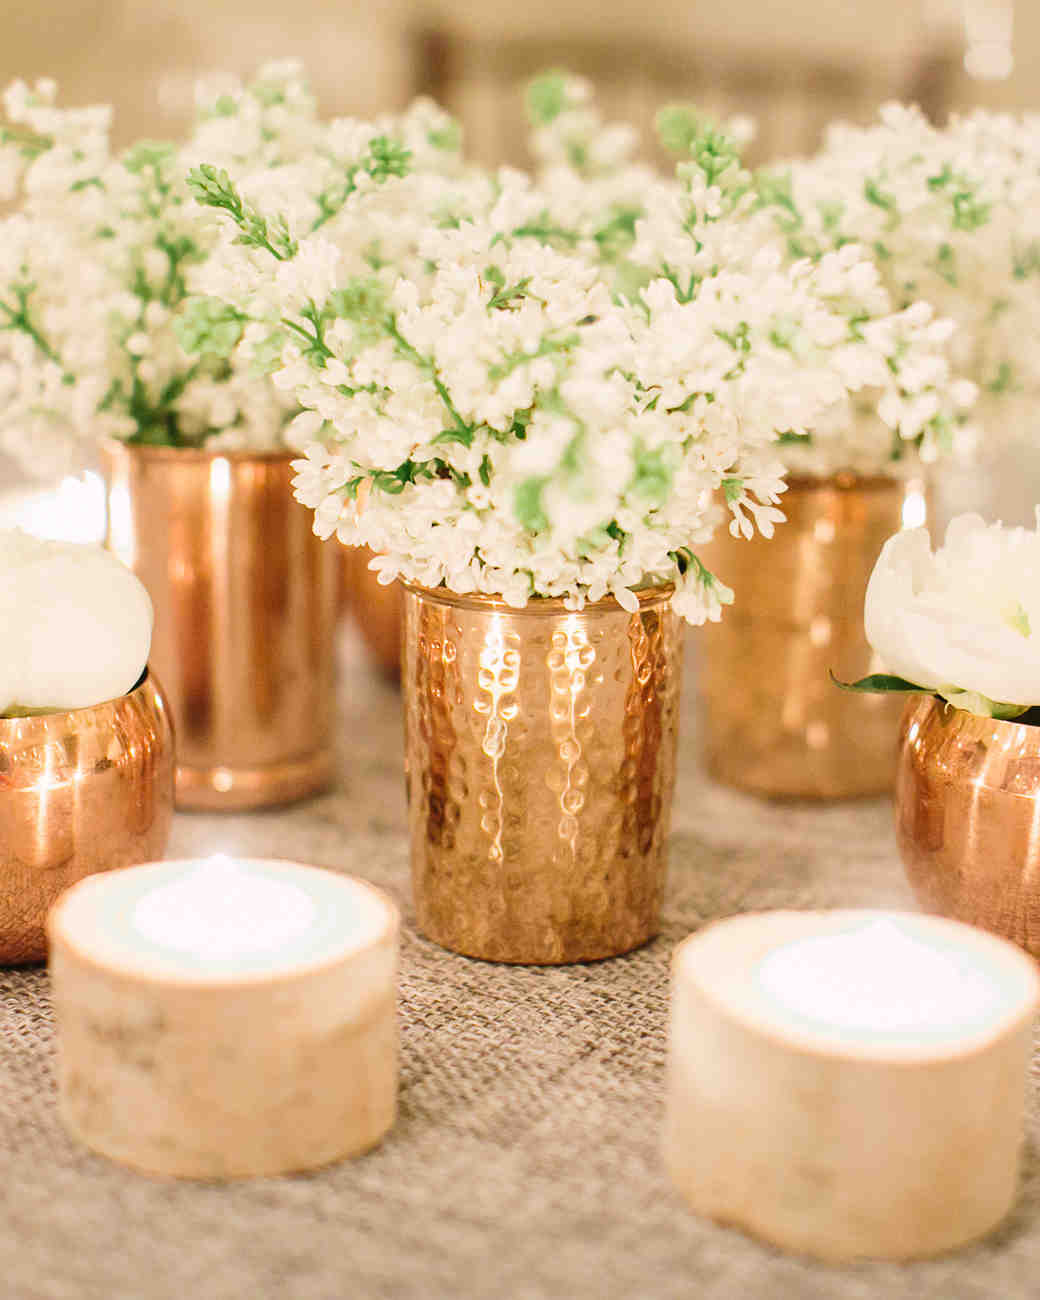 winter-bridal-shower-ideas-copper-and-birch-centerpiece-events-in-the-city-1215.jpg